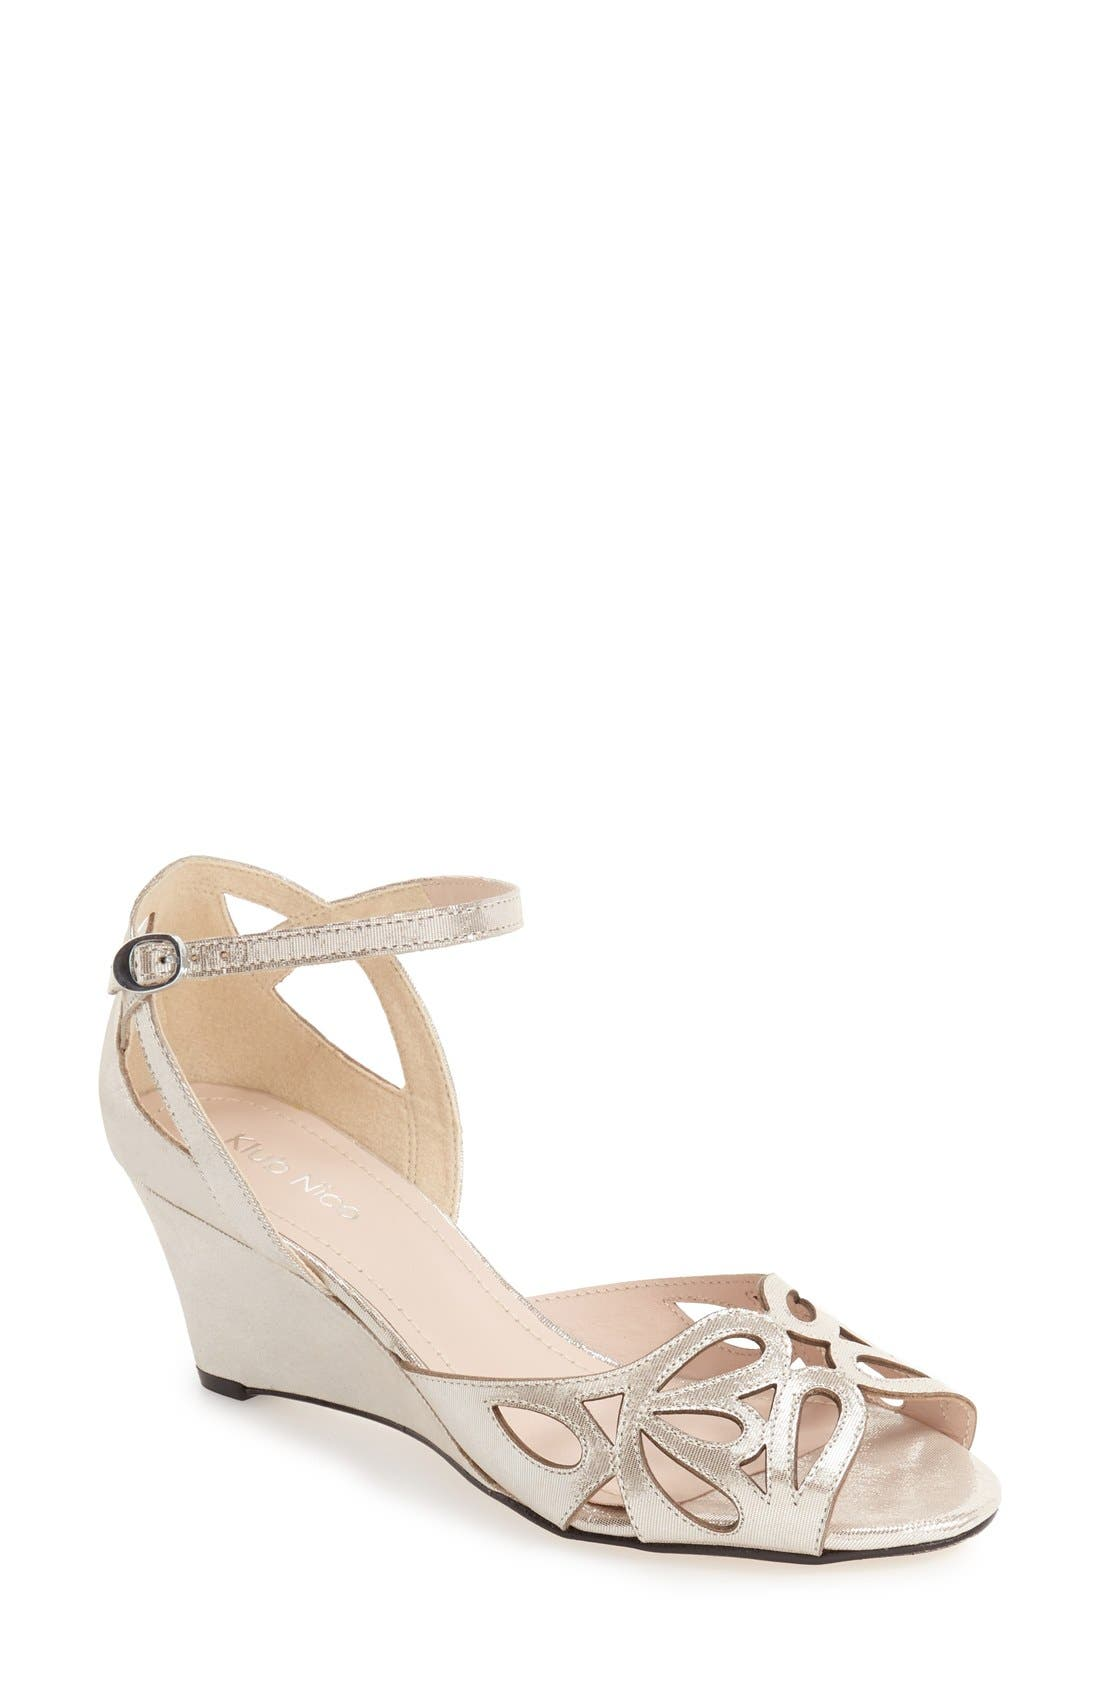 Alternate Image 1 Selected - Klub Nico 'Kismet' Wedge Sandal (Women)